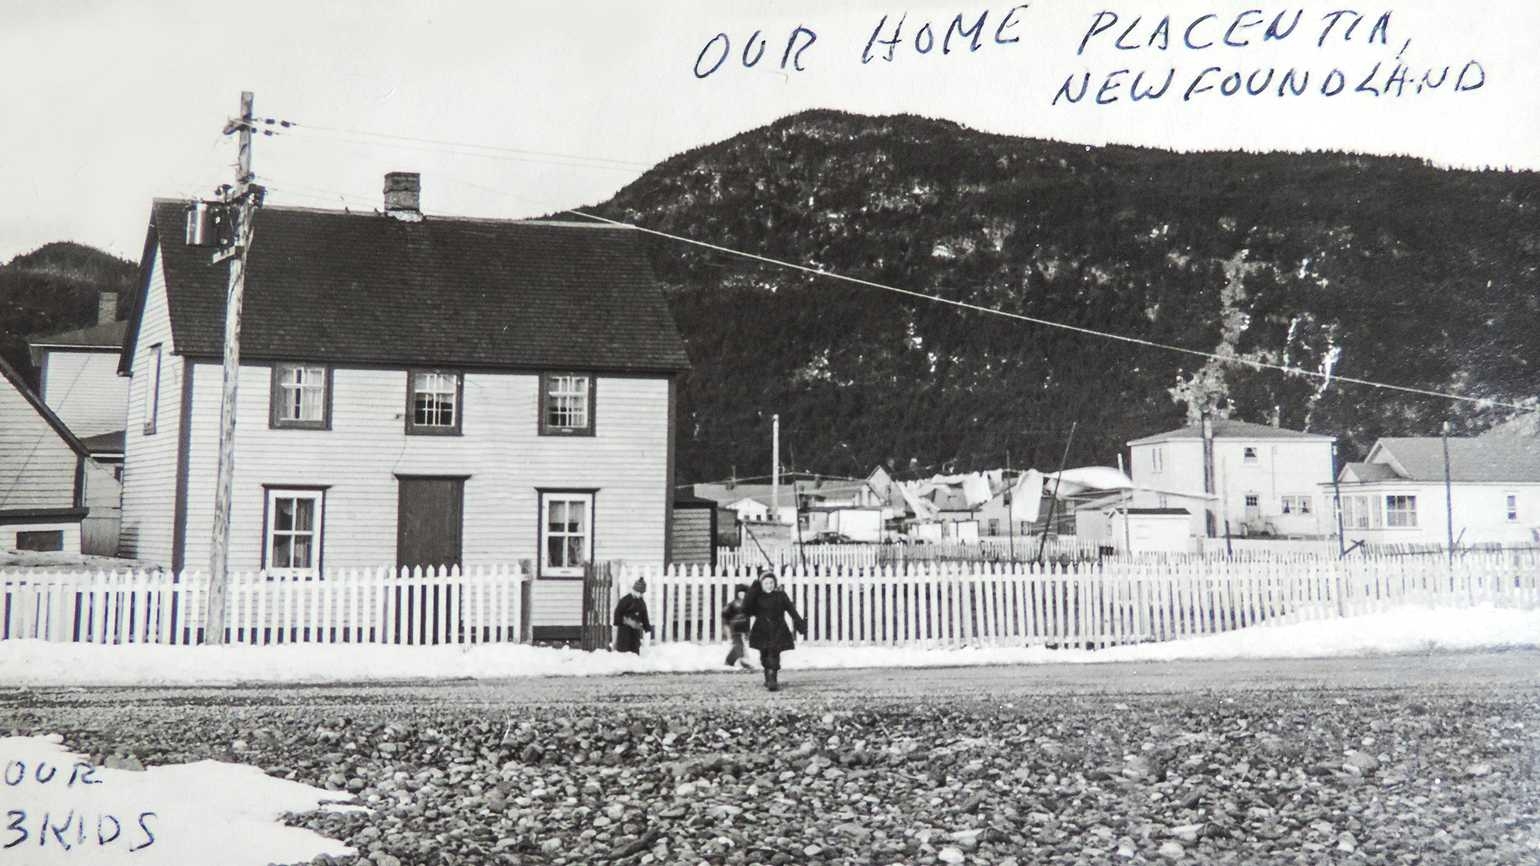 Judy's childhood home in Placentia, Newfoundland